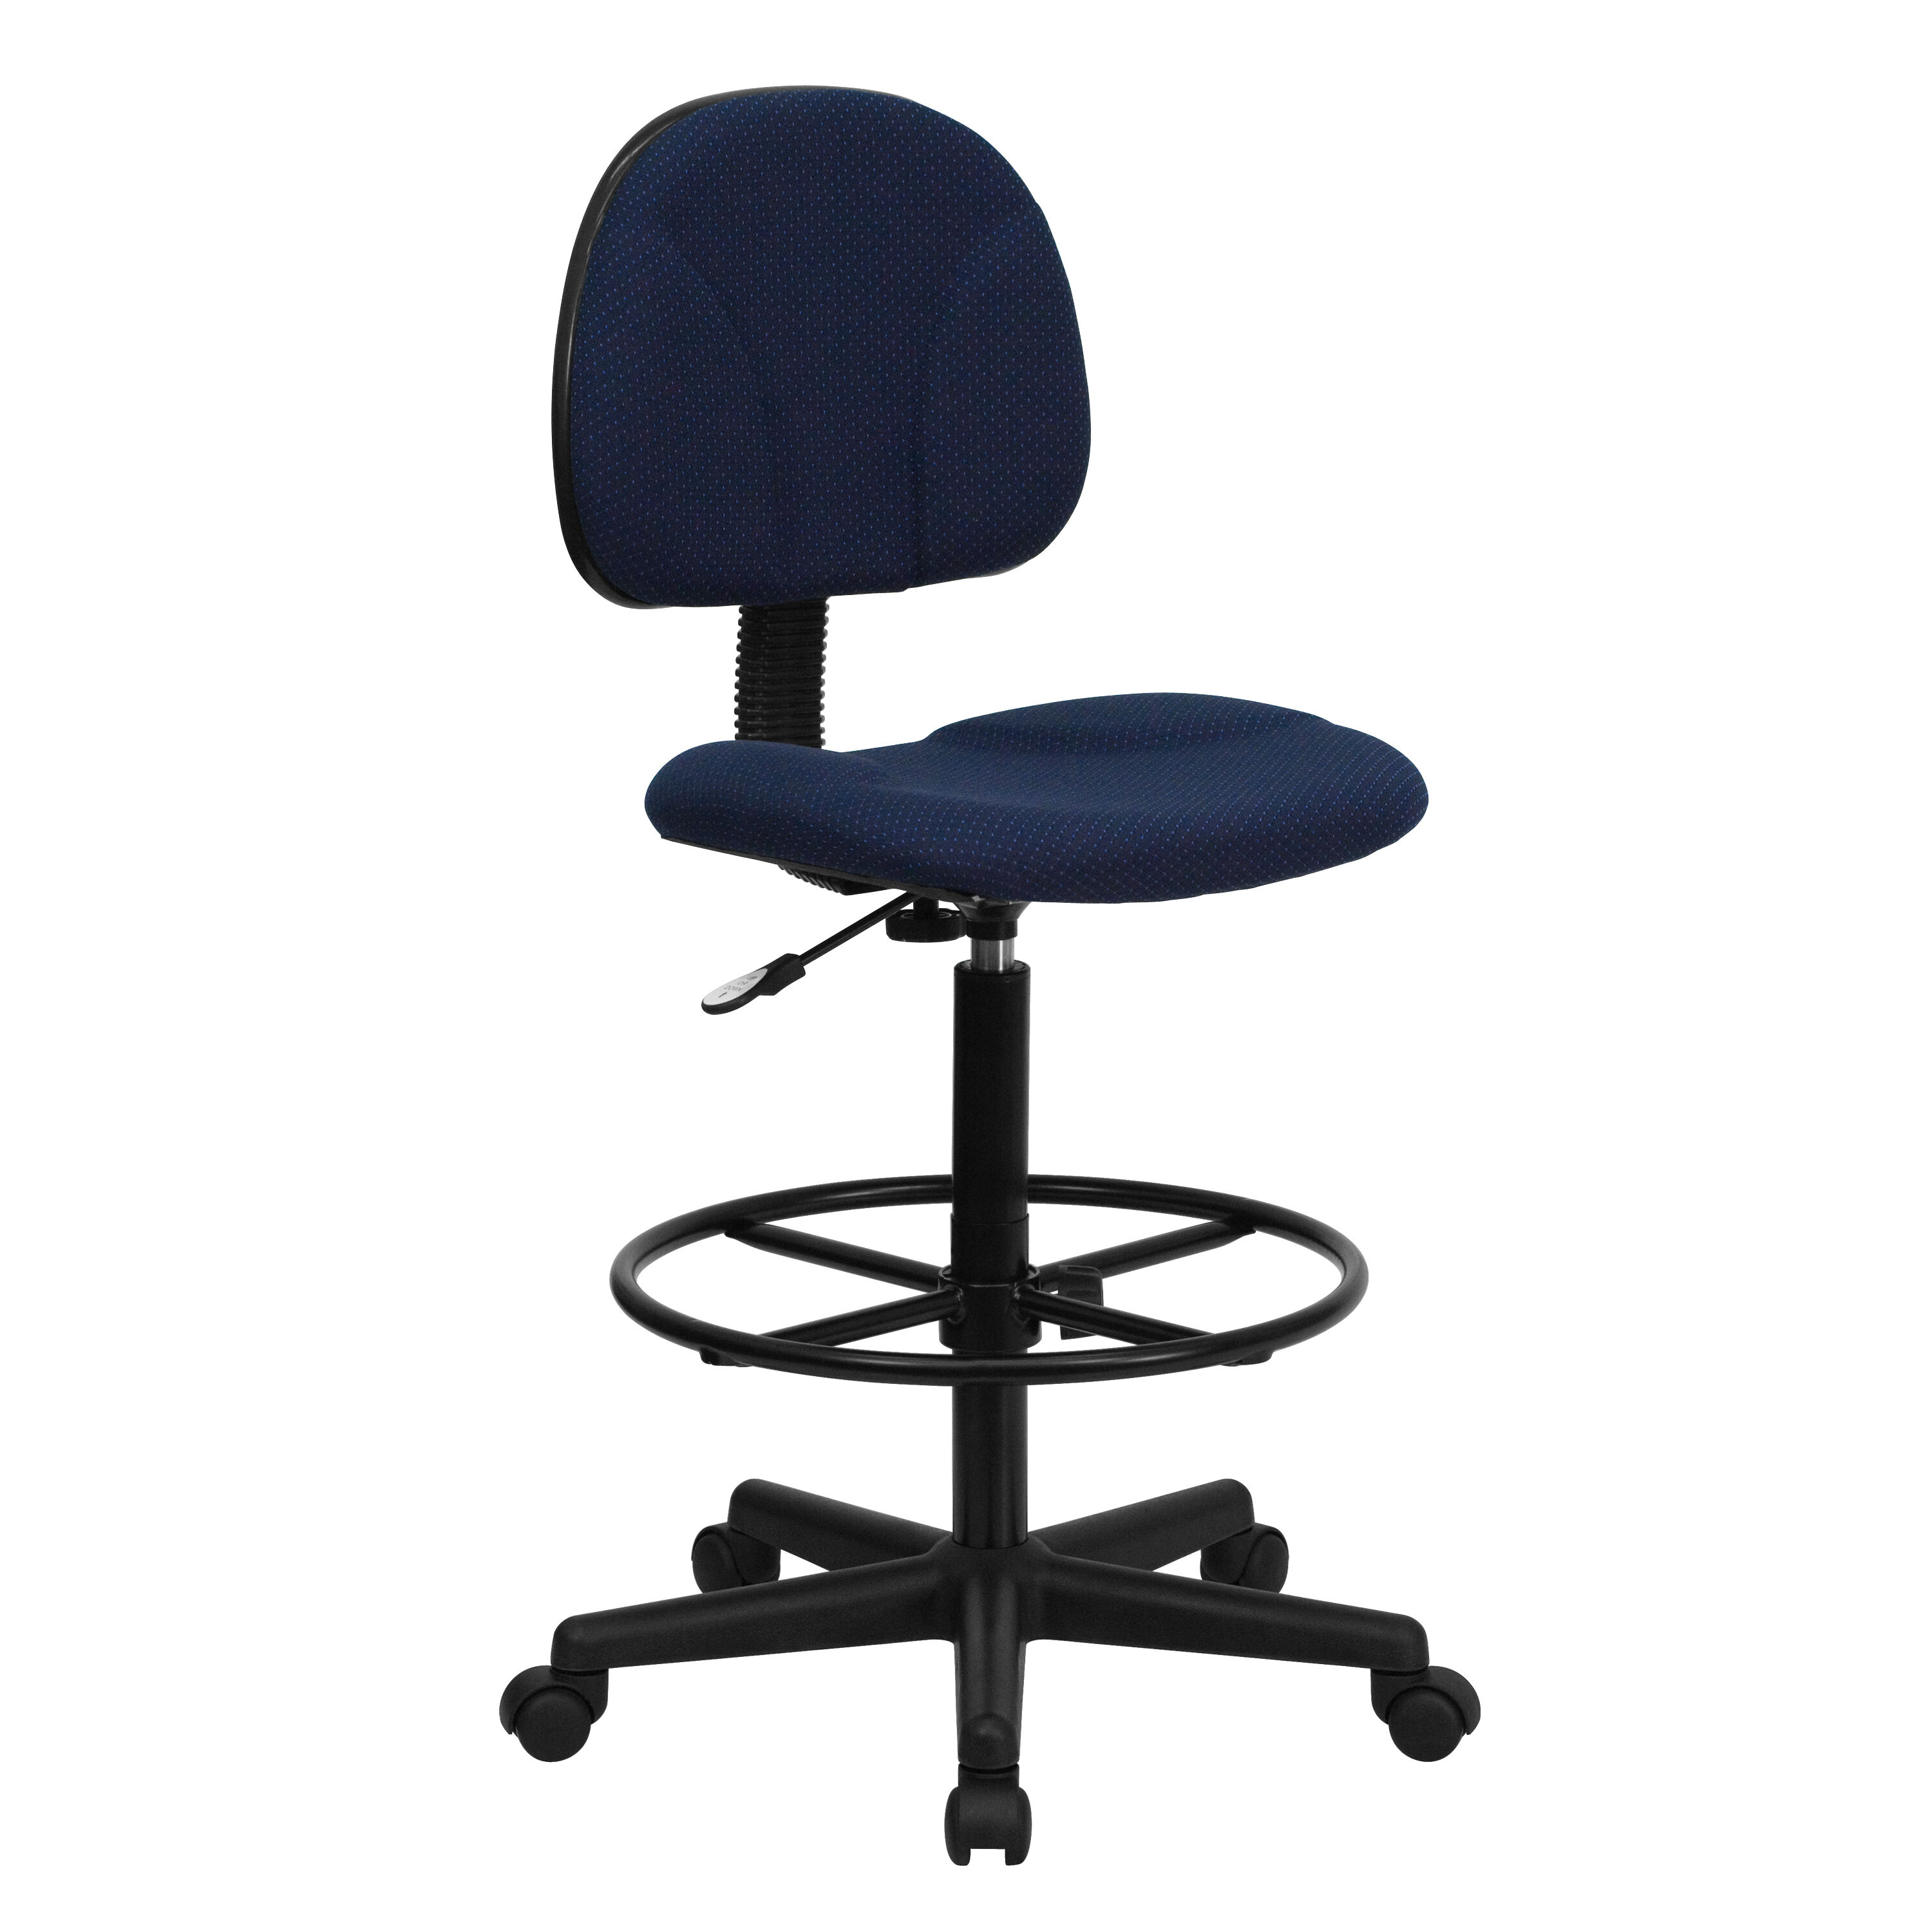 Exceptionnel Our Navy Blue Patterned Fabric Drafting Chair (Cylinders: 22.5